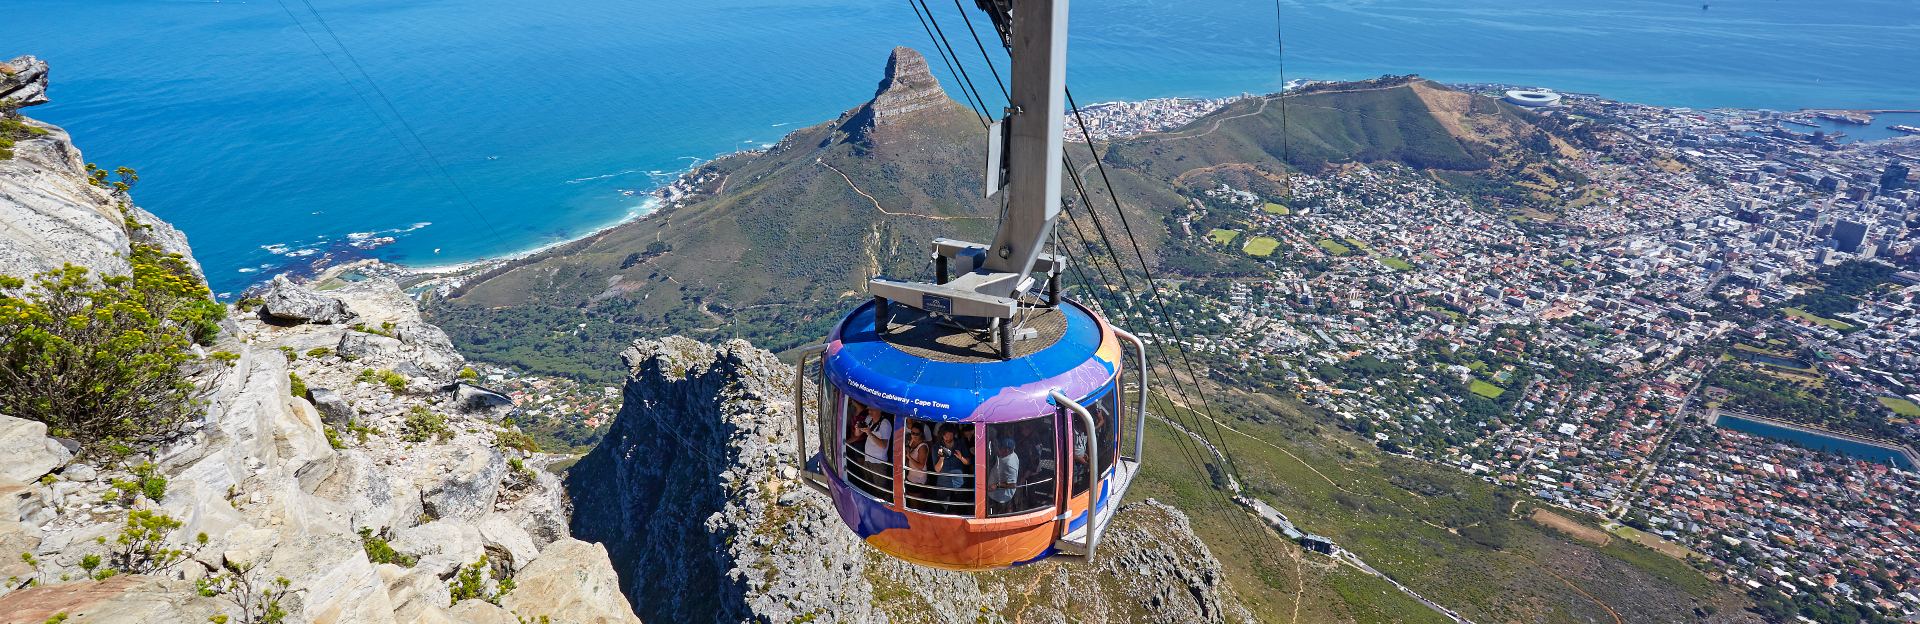 table-mountain-audio-walking-tour